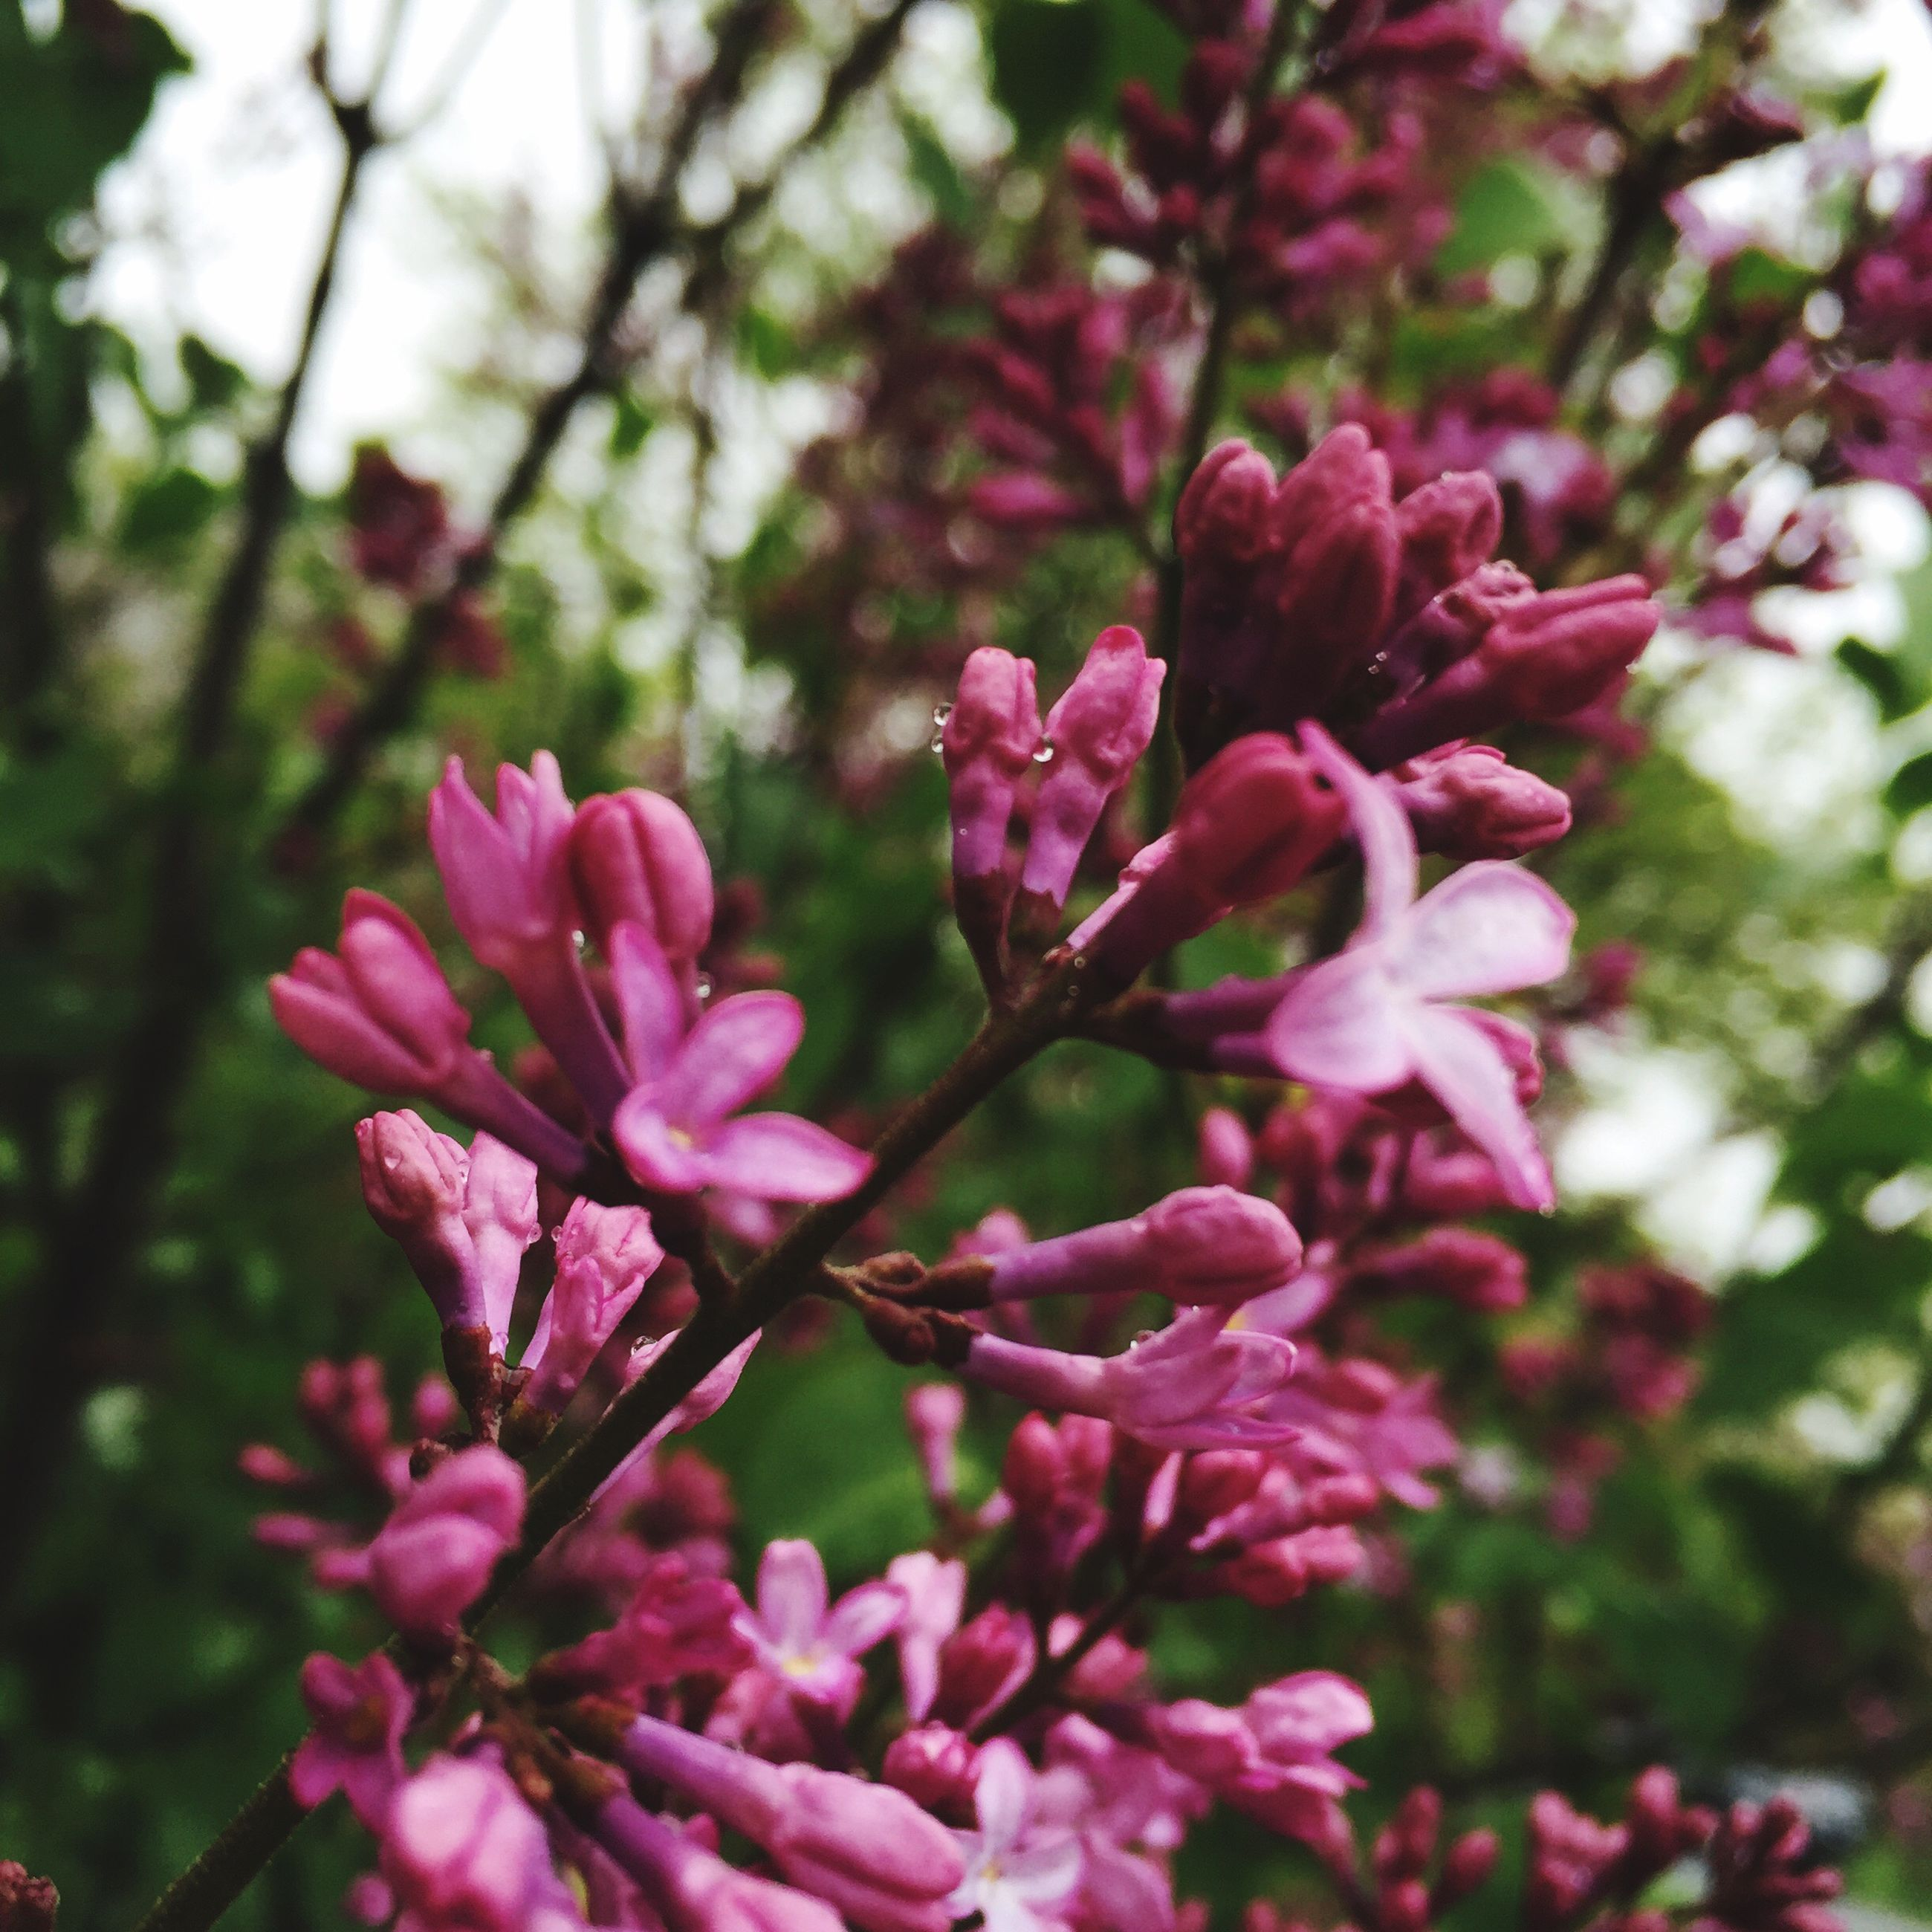 flower, pink color, freshness, growth, fragility, focus on foreground, beauty in nature, petal, close-up, nature, pink, blooming, plant, flower head, tree, day, branch, outdoors, park - man made space, blossom